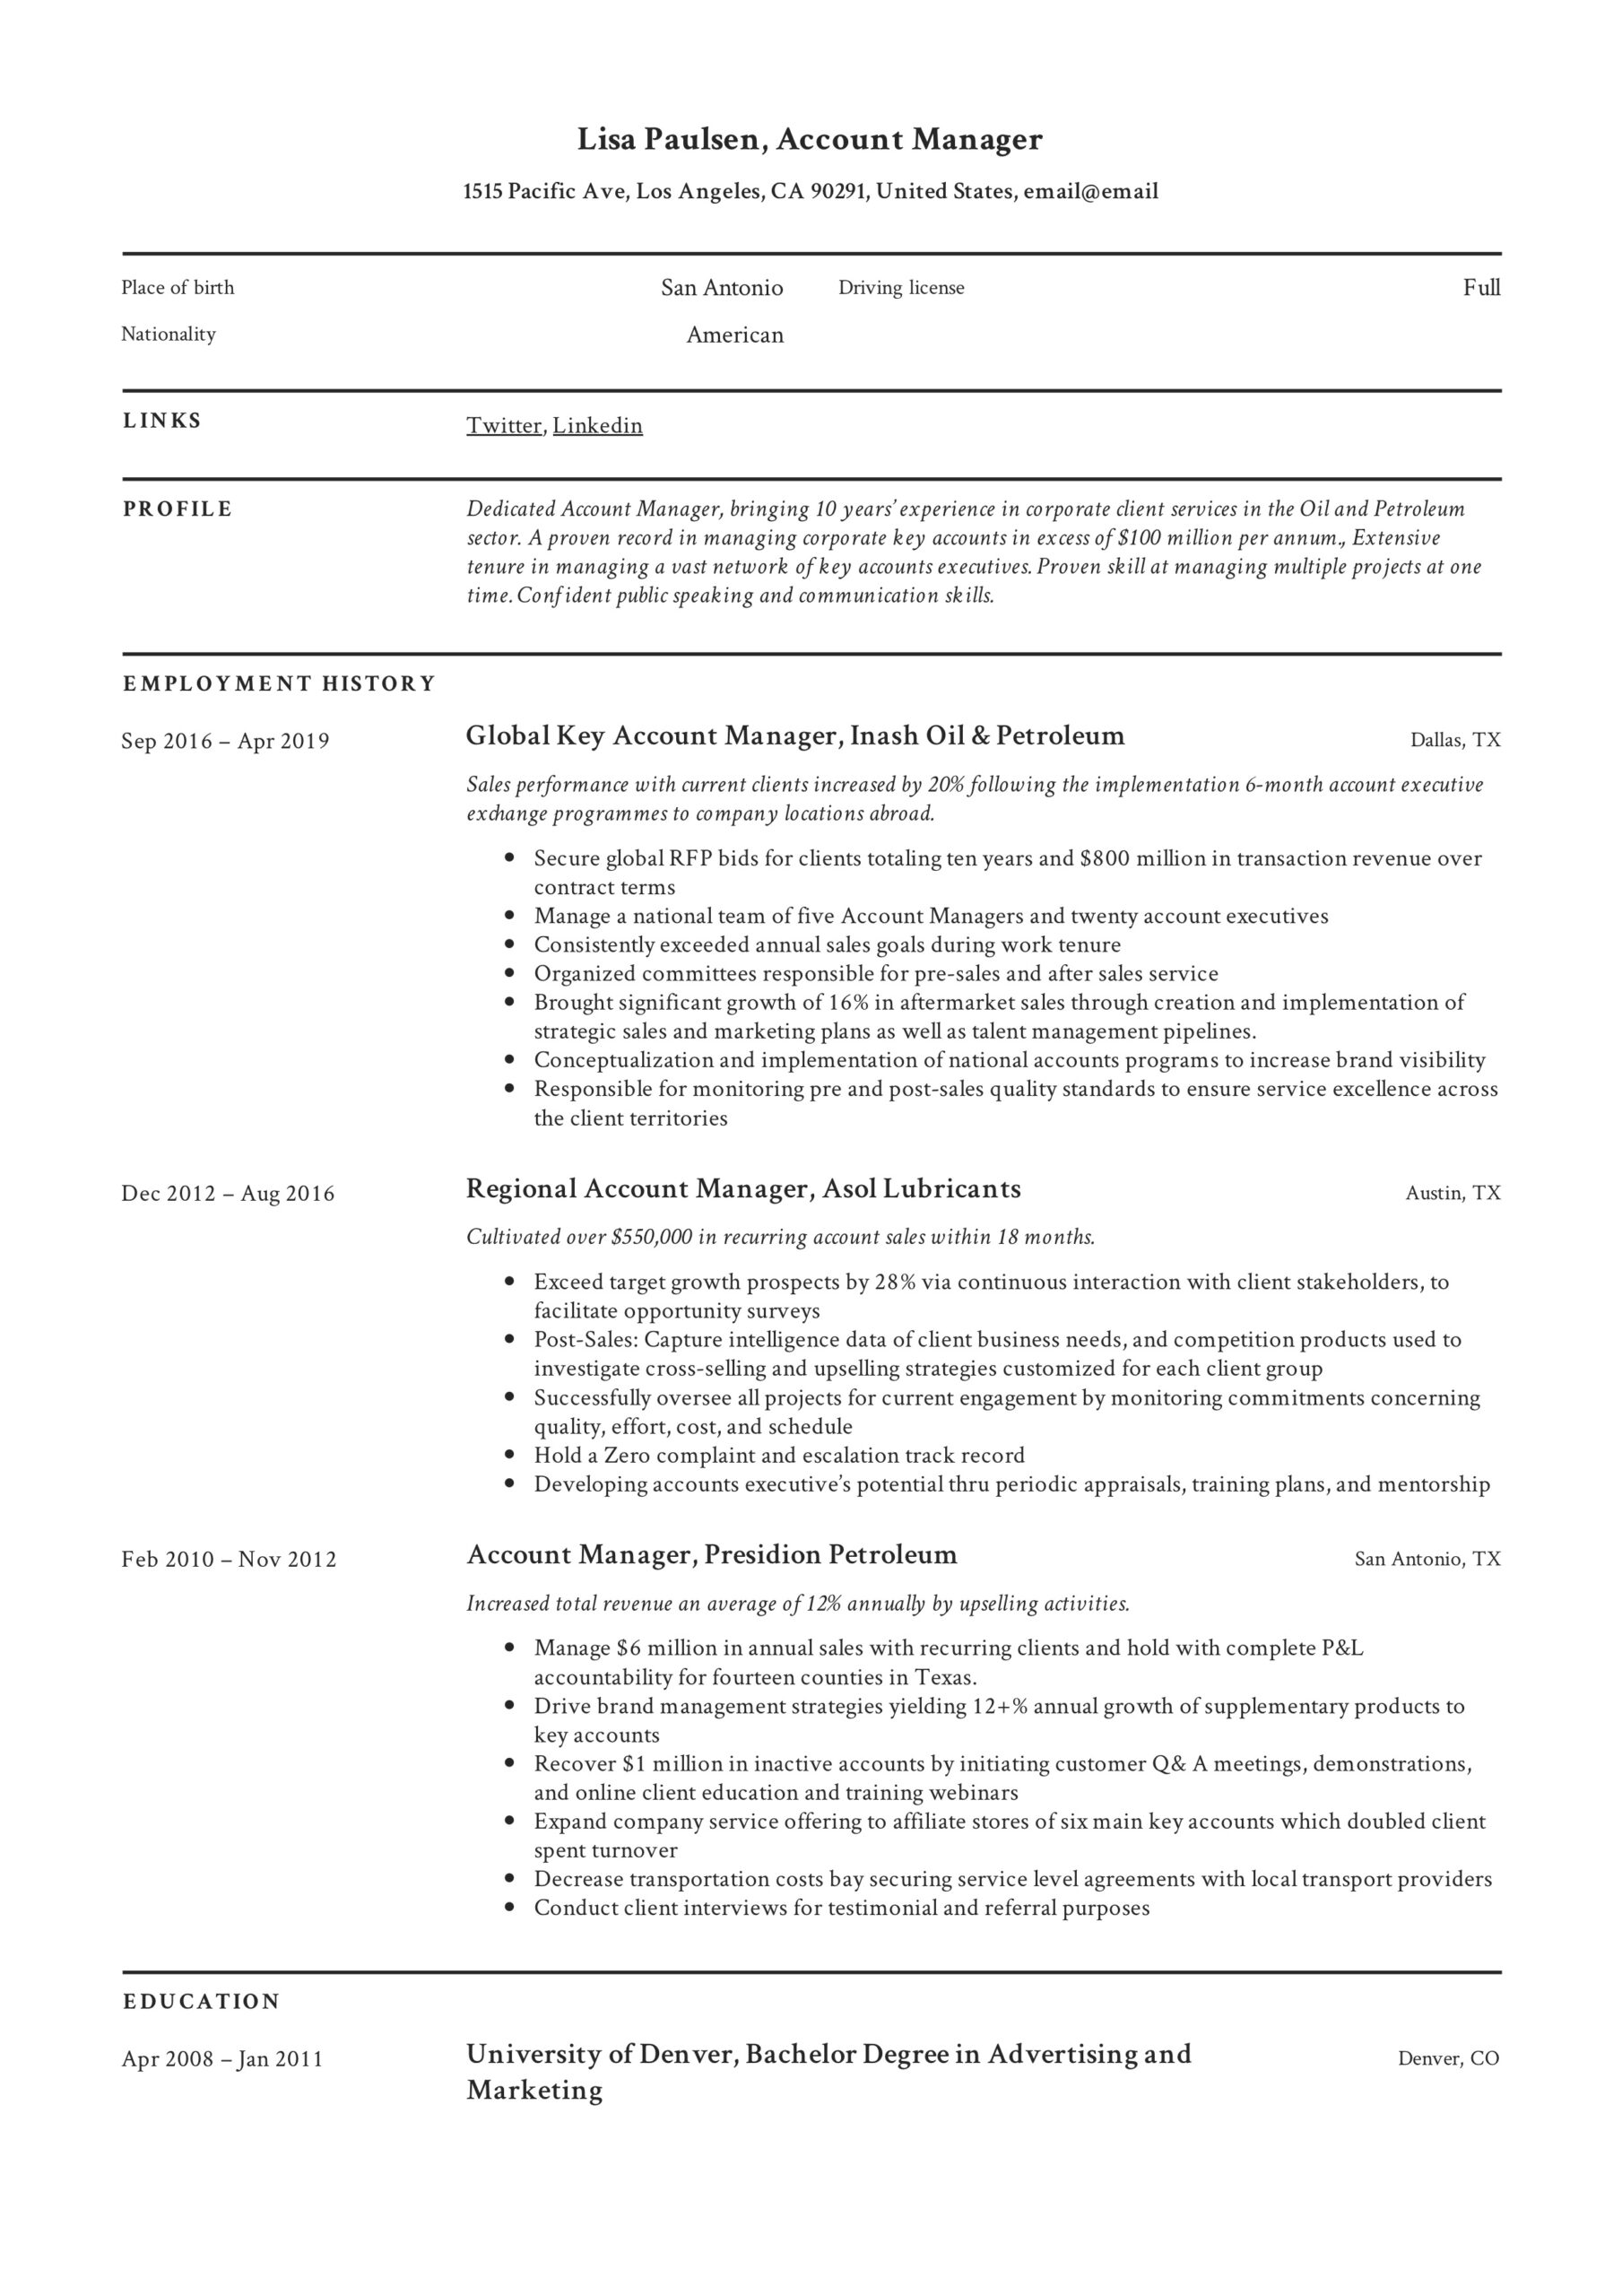 account manager resume writing guide examples director of transportation lisa paulsen Resume Director Of Transportation Resume